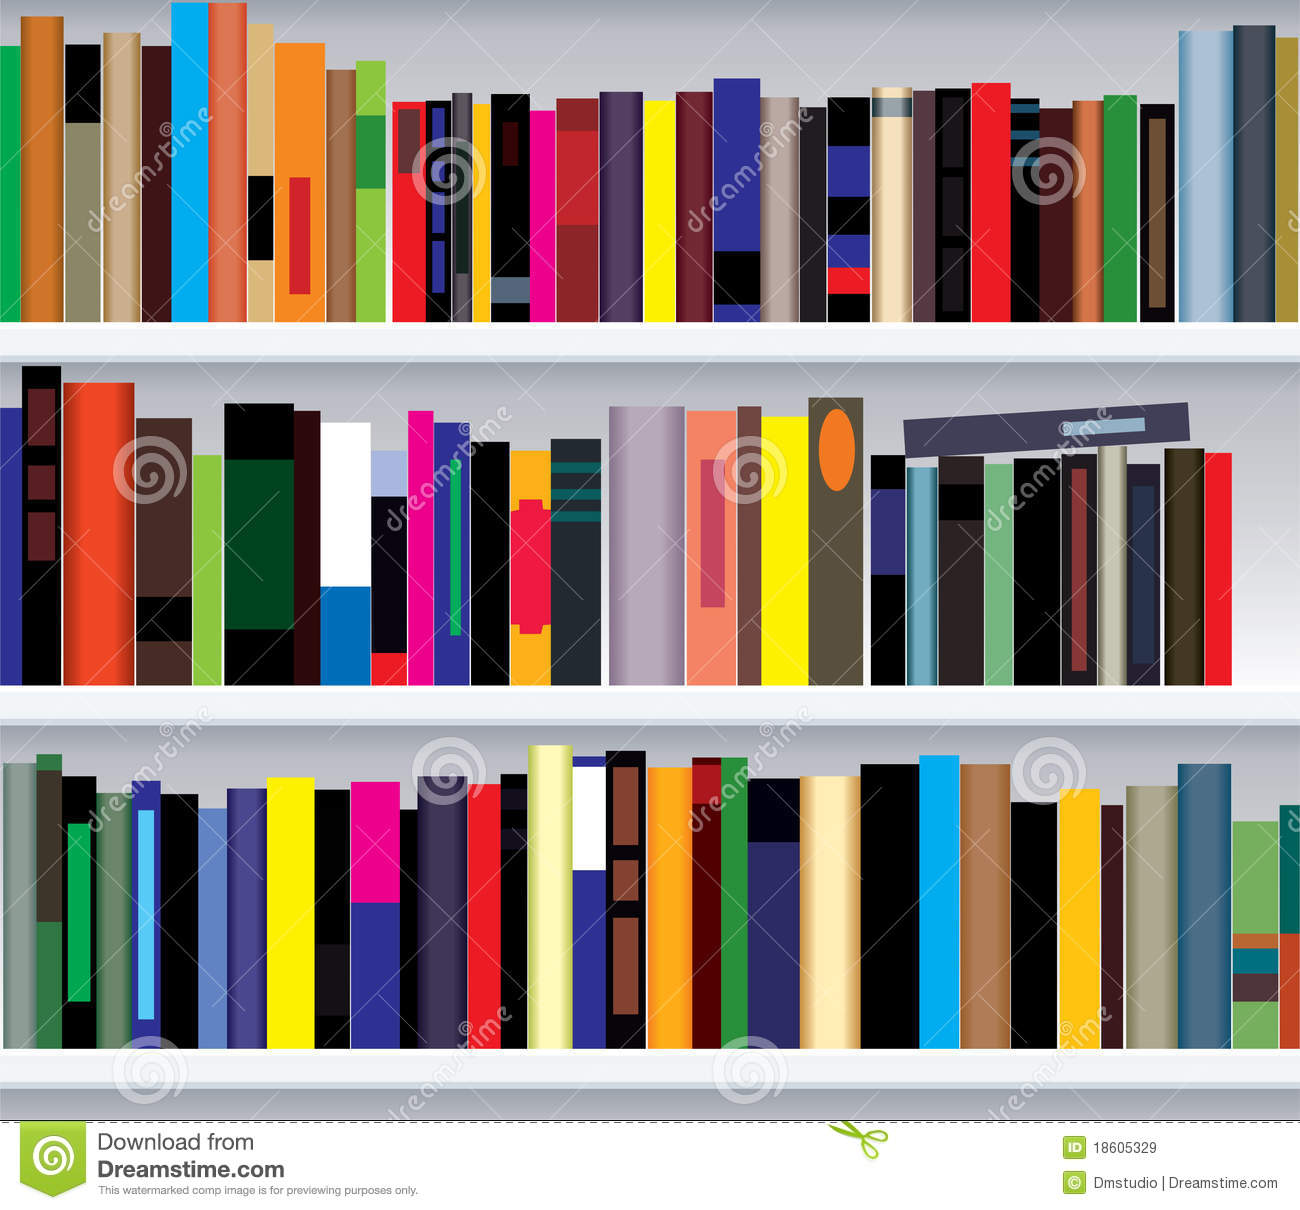 Bookshelf With Books Royalty Free Stock Images - Image: 18605329: dreamstime.com/royalty-free-stock-images-bookshelf-books-image18605329